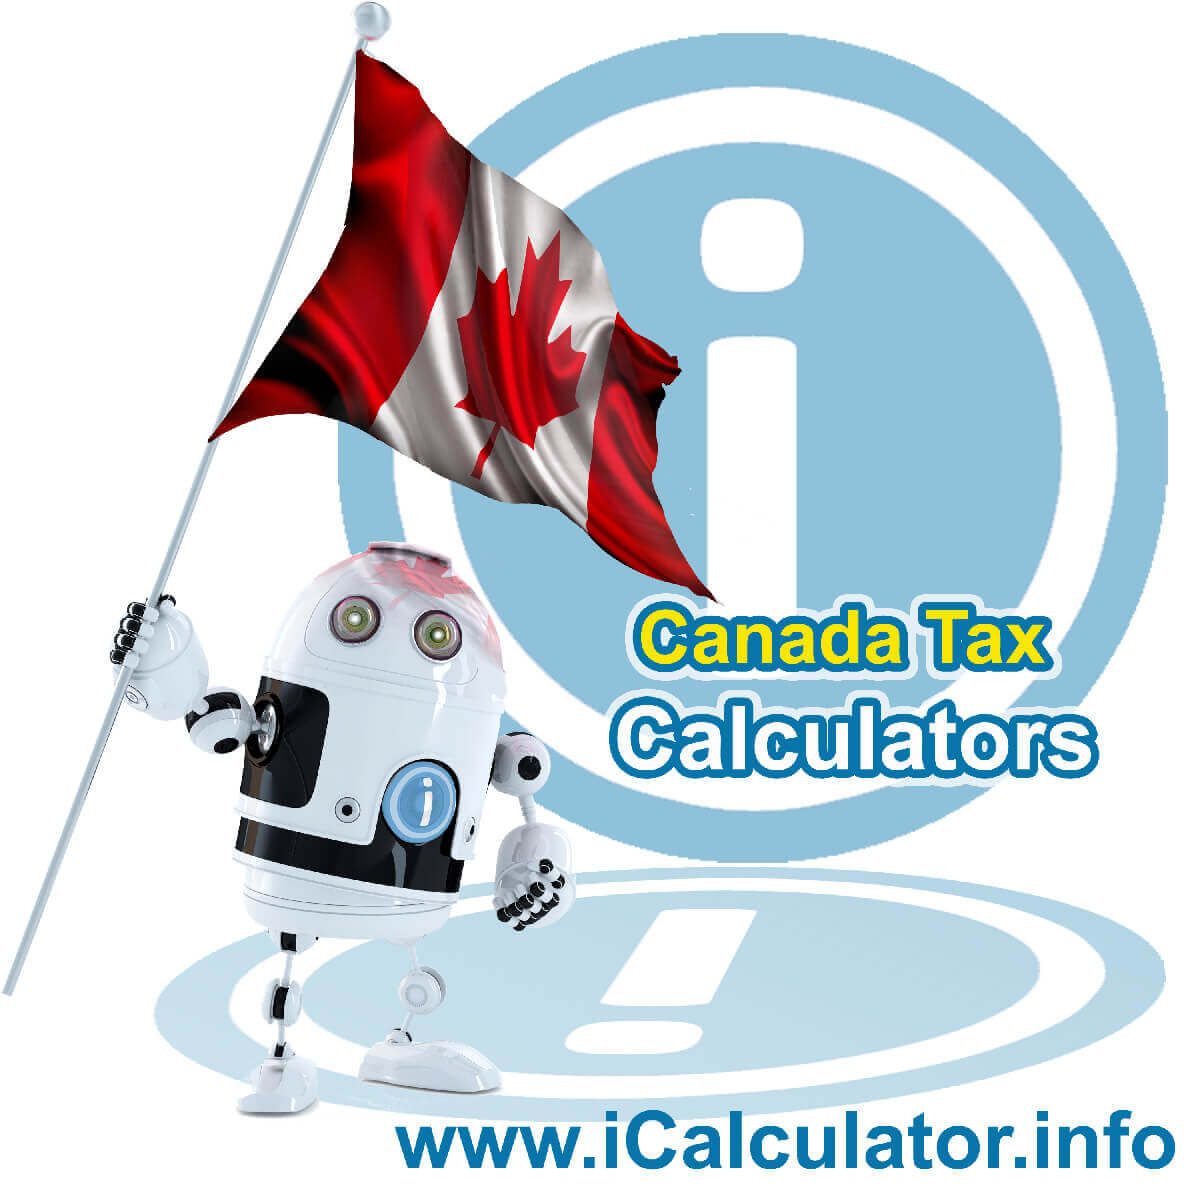 Canada Salary Comparison Calculator. This image shows the Canada flag and information relating to the income tax formula for the Canada Salary Comparison Calculator